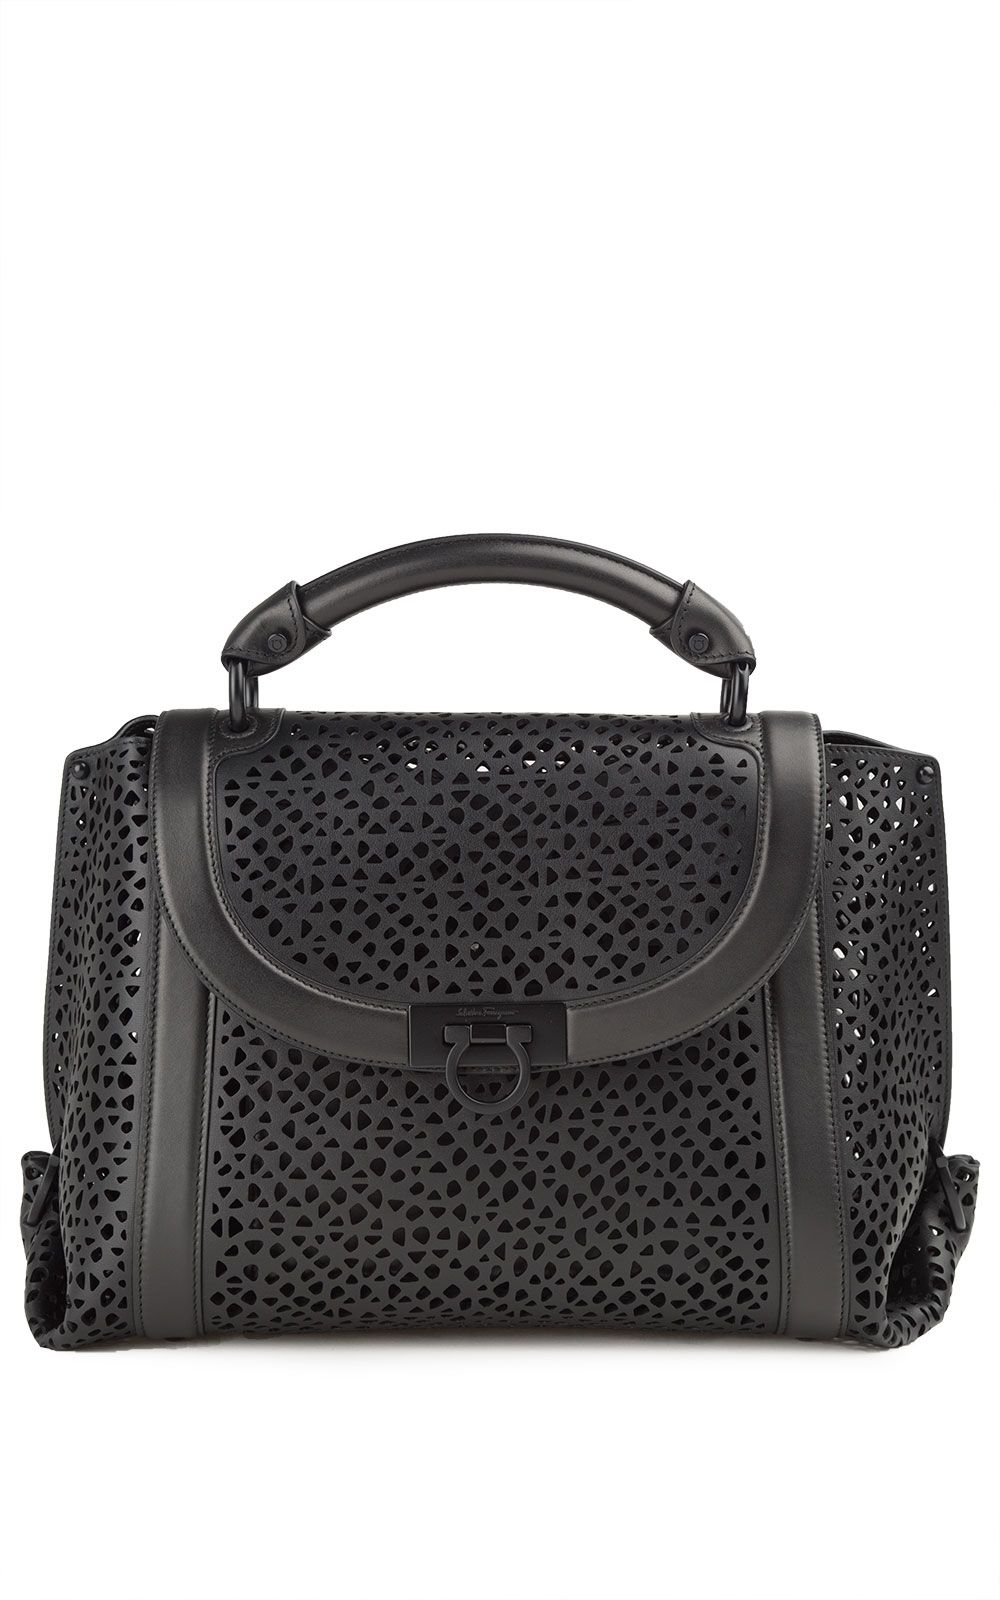 Salvatore Ferragamo Suzanna Medium Perforated-leather Tote Bag